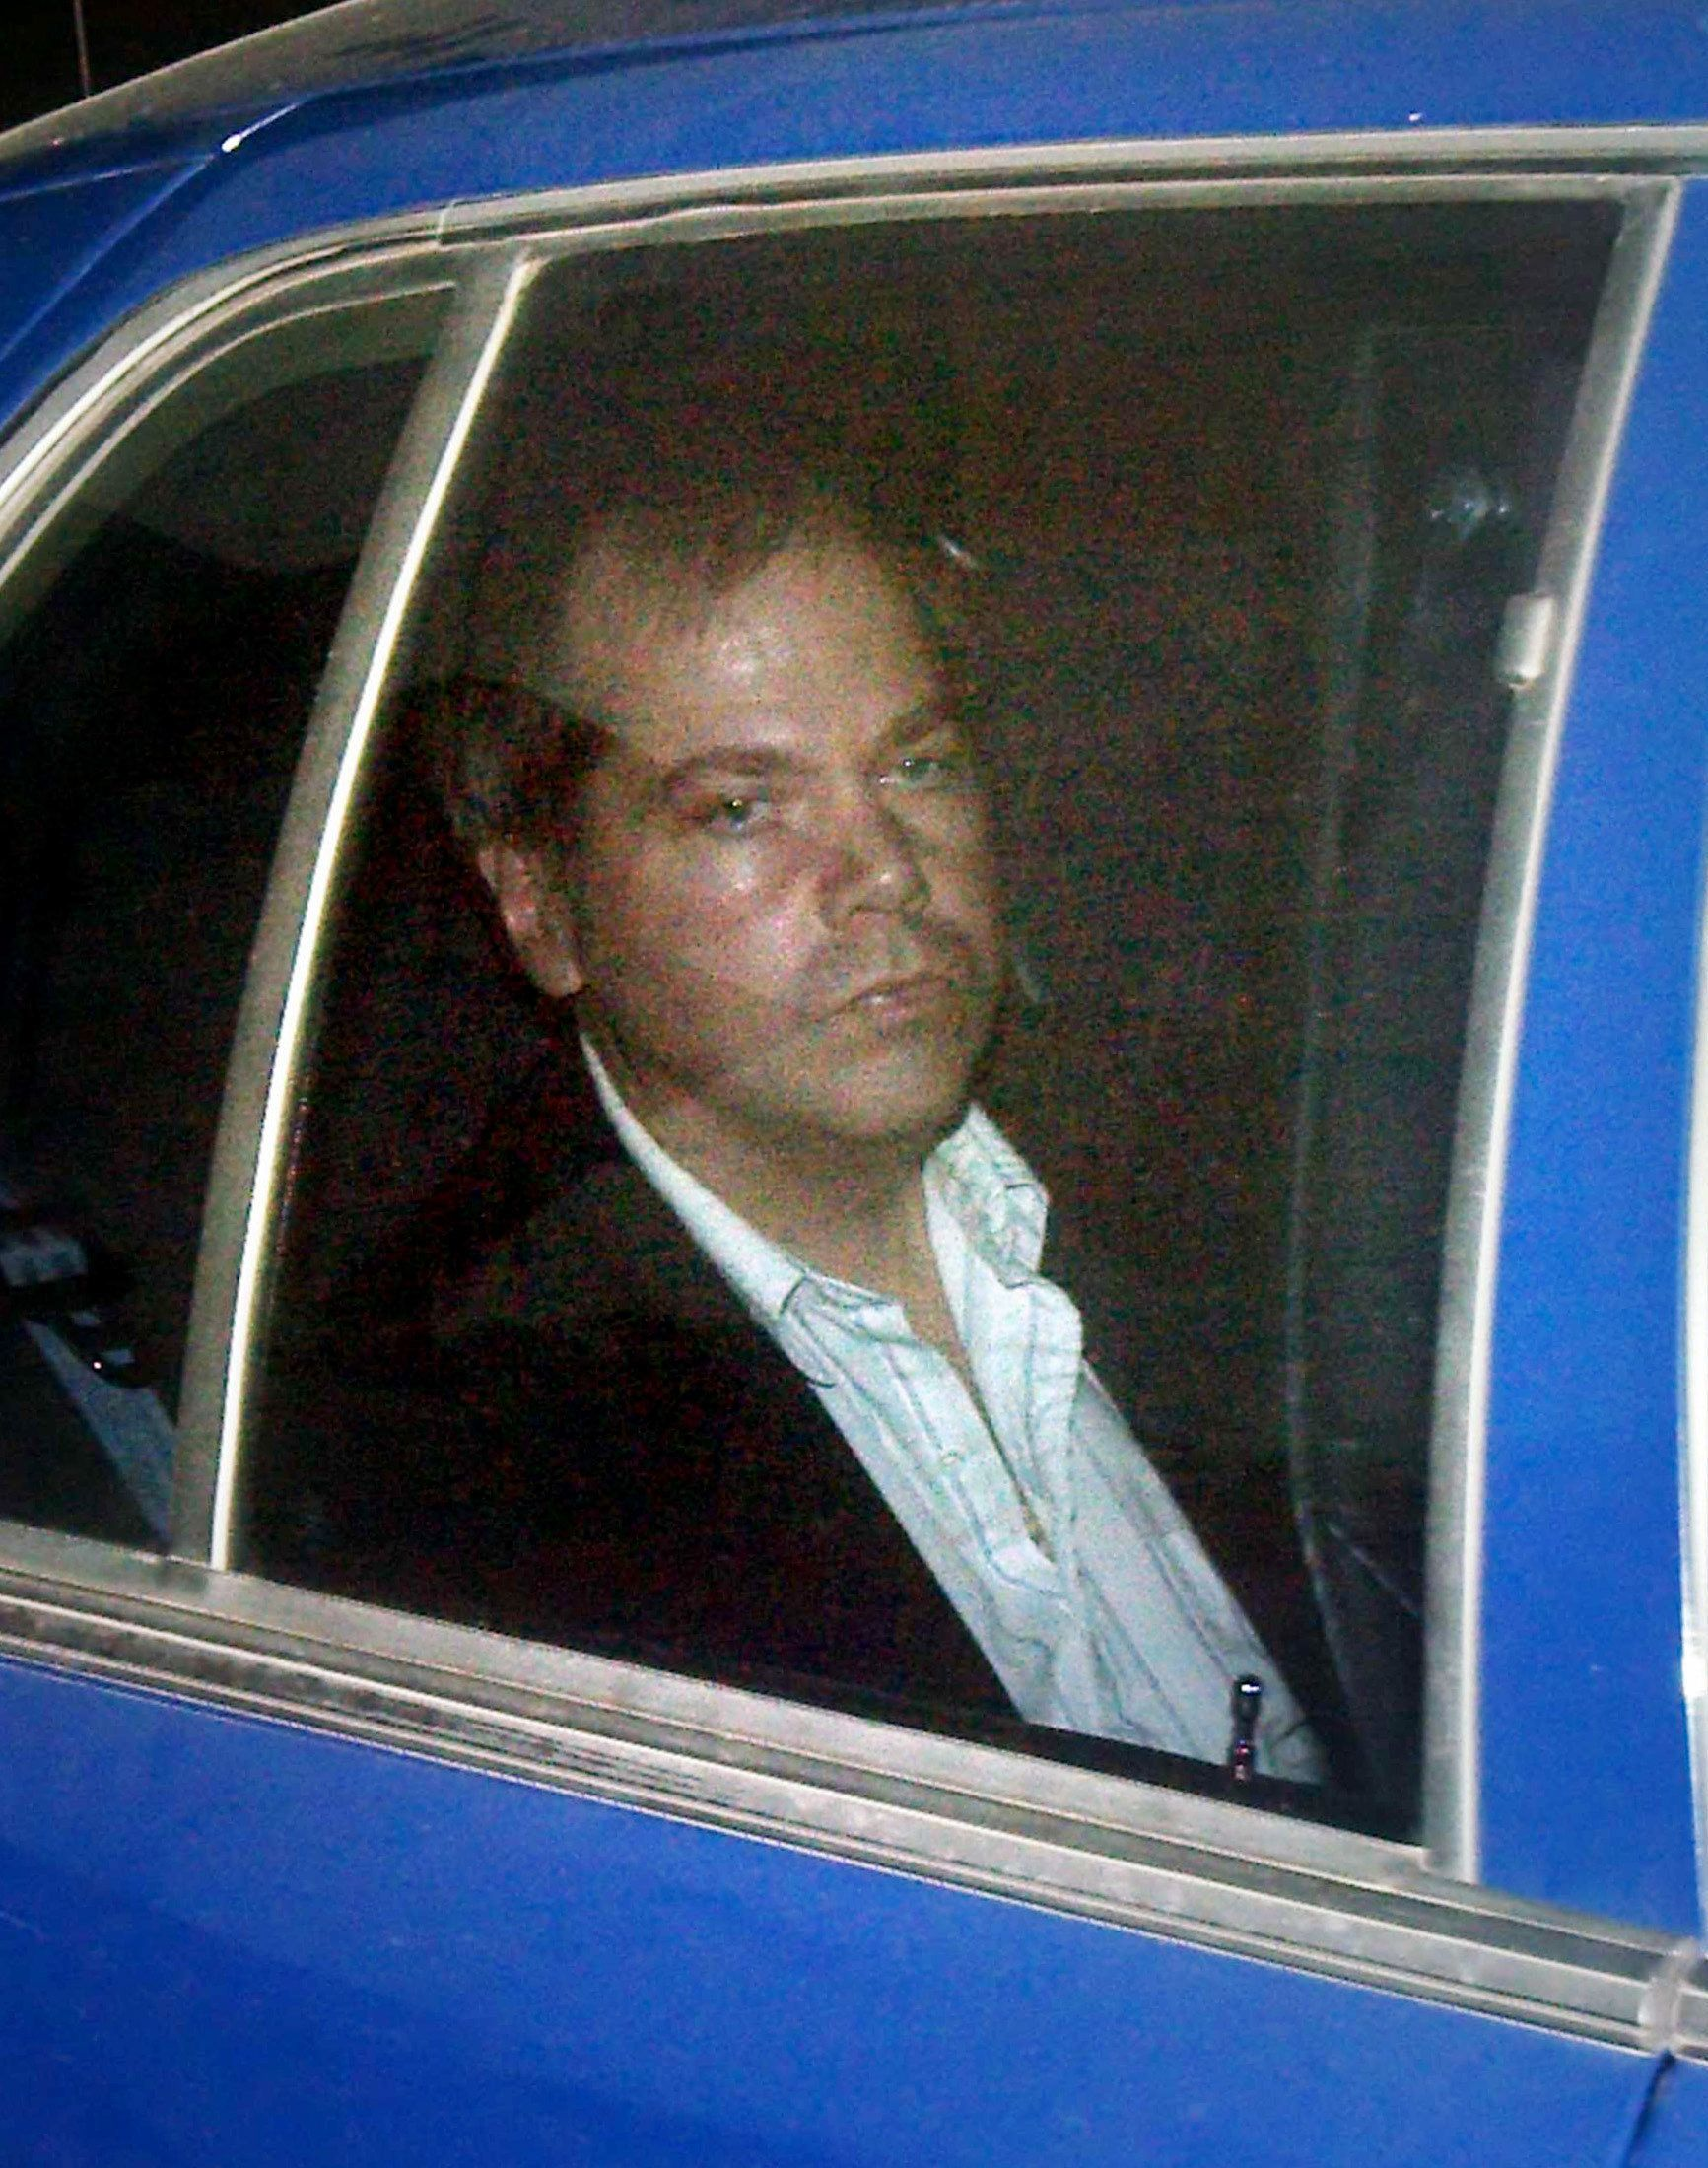 John Hinckley Jr. arrives at the E. Barrett Prettyman U.S. District Court in Washington in this November 19, 2003 file photo.